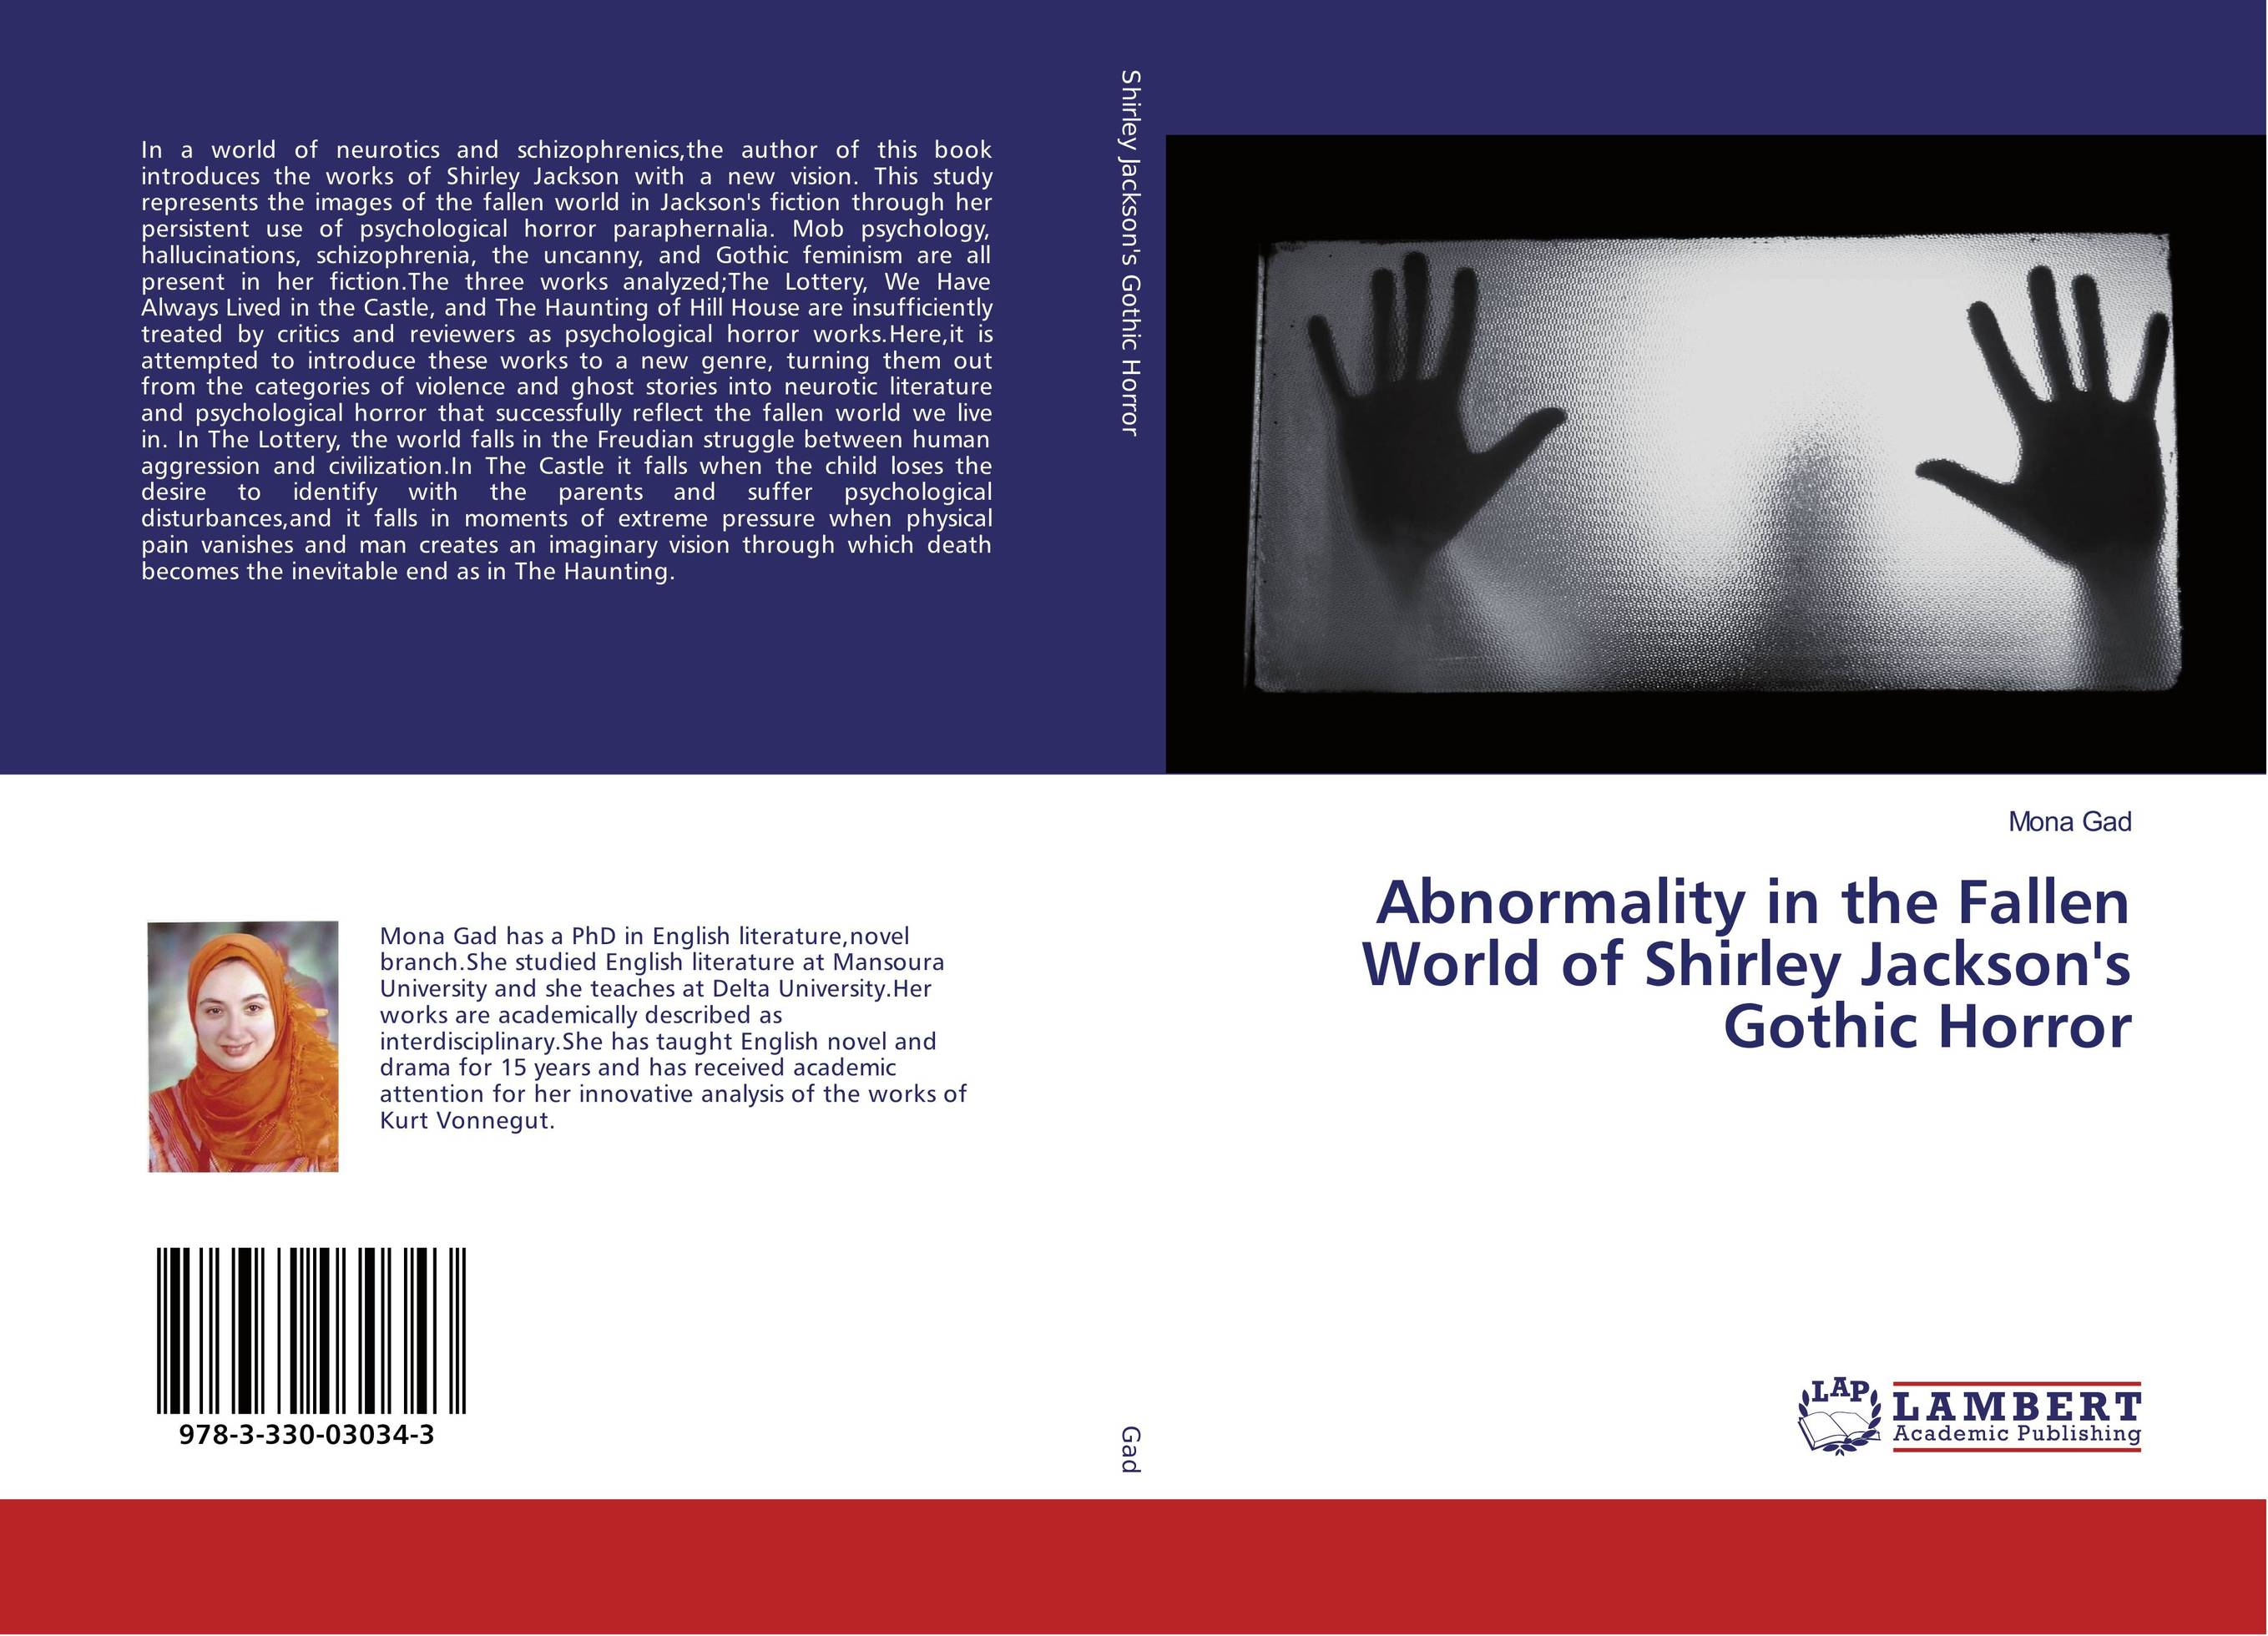 9783330030343 Abnormality in the Fallen World of Shirley JacksonGothic Horror